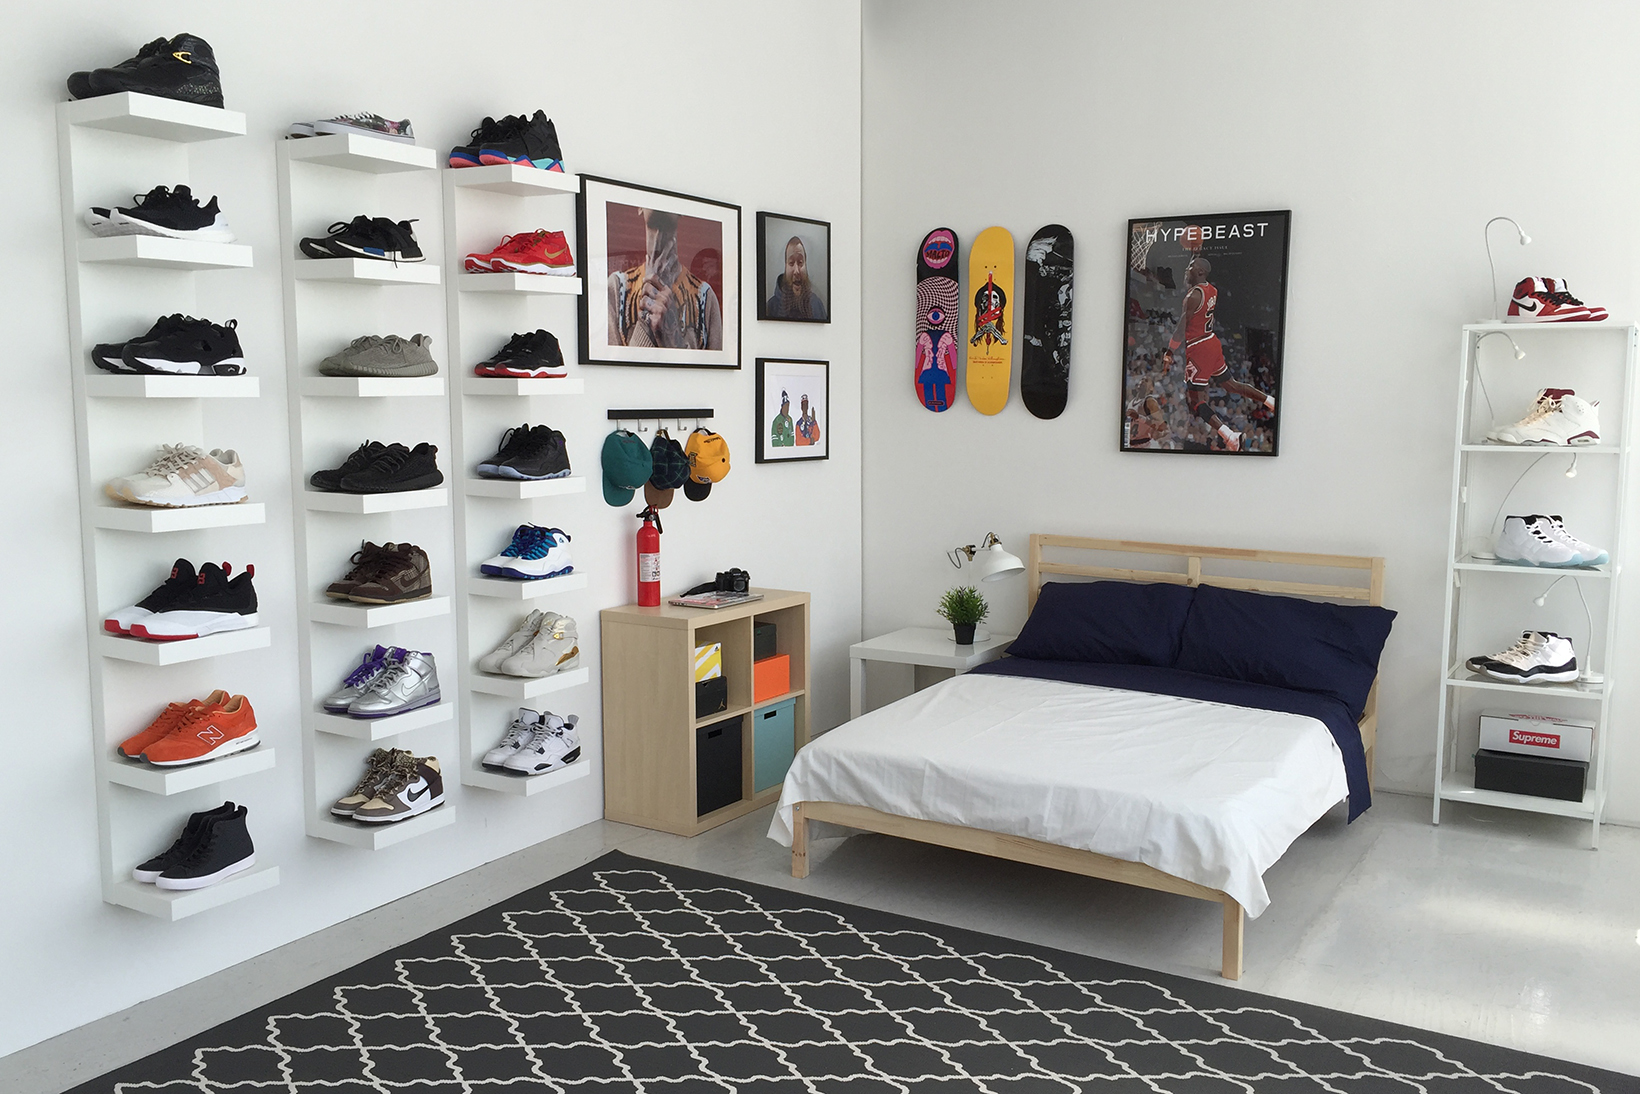 Ikea Box Room Ideas 5 Brilliant Ways To Personalise Your Sleeping Space With